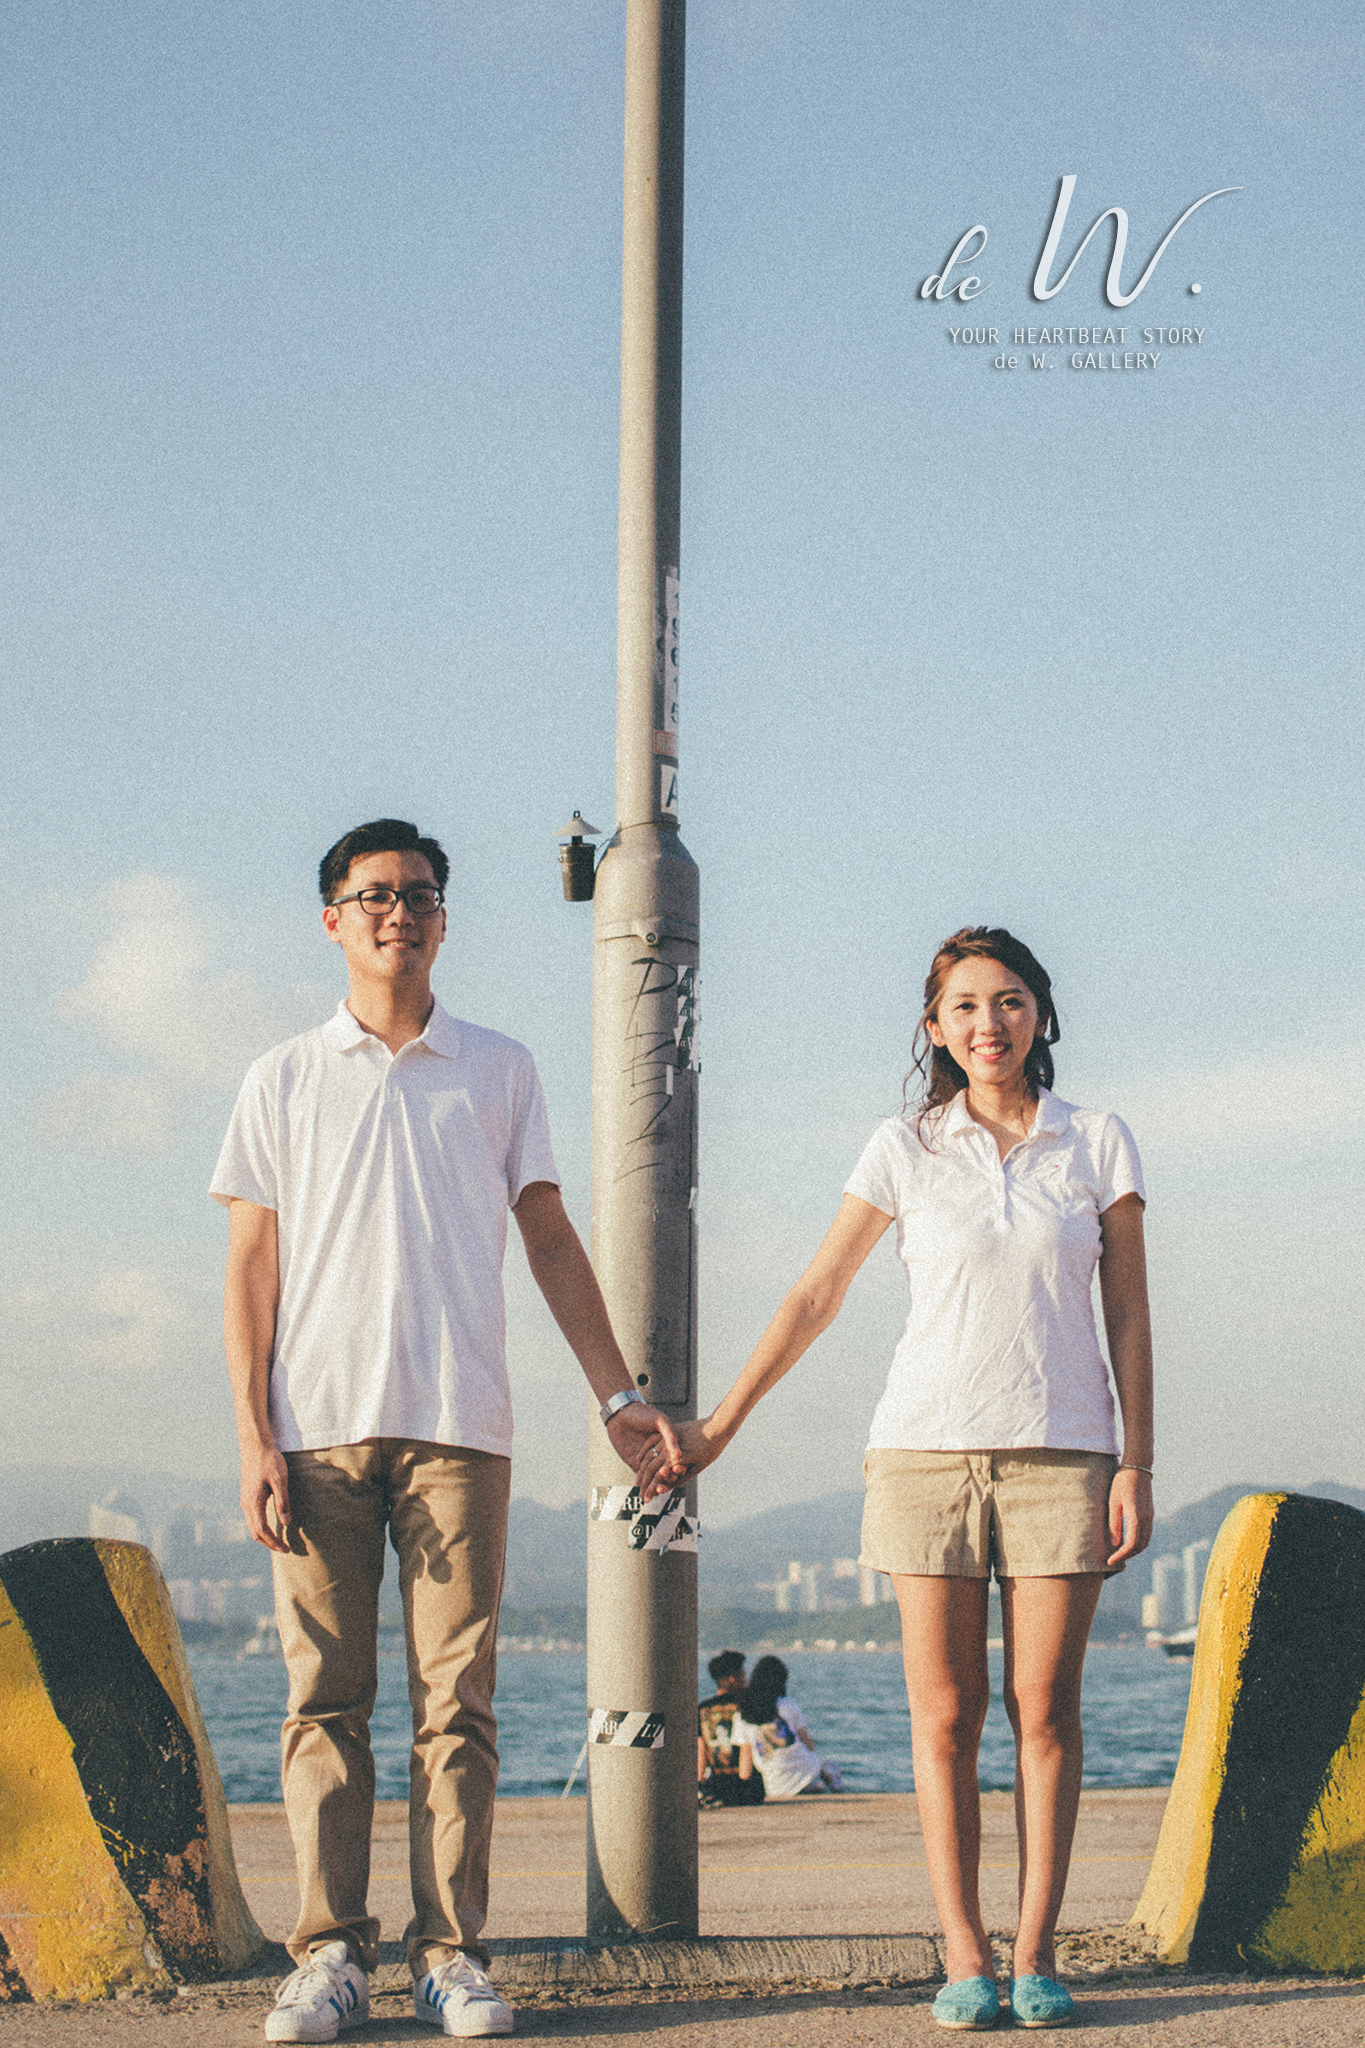 2048 de w gallery Film style hong kong 底片 拍拖 engagement vsco 故事 中環 西環 central-27